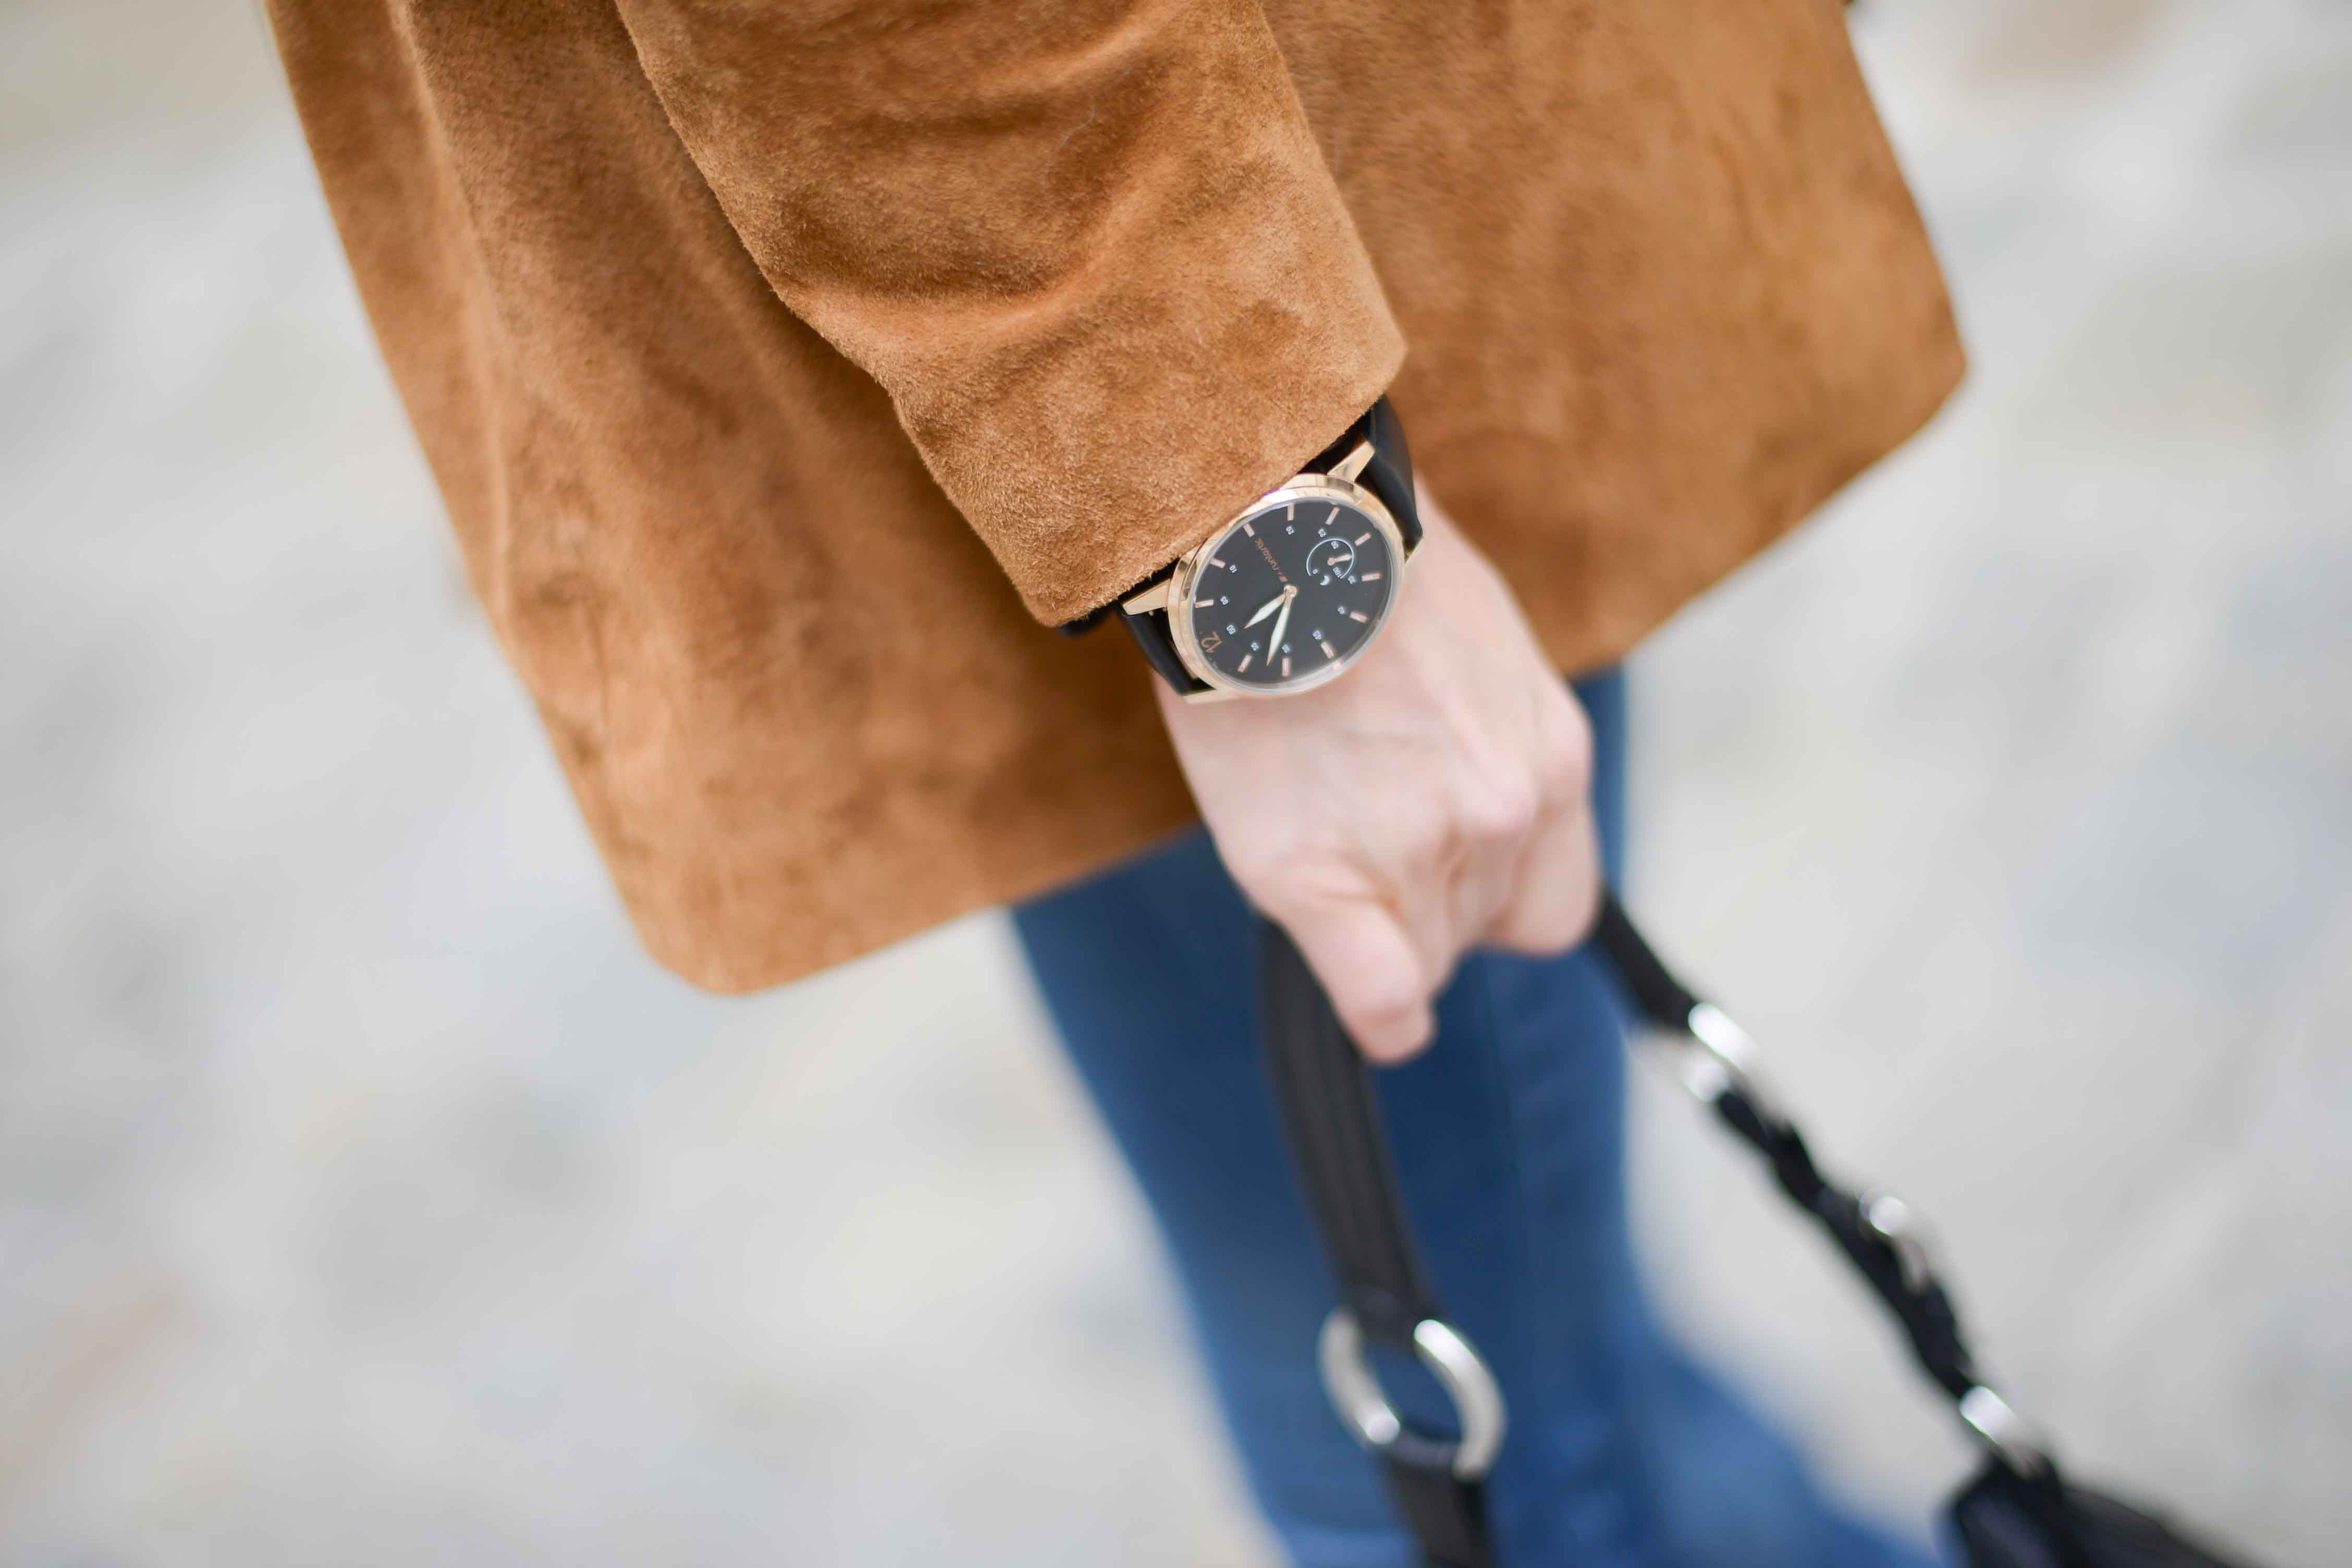 Great photo of the Runtastic Moment fitness tracker watch. Elegant in black and rose gold, and  super functional to track all sorts of activities.